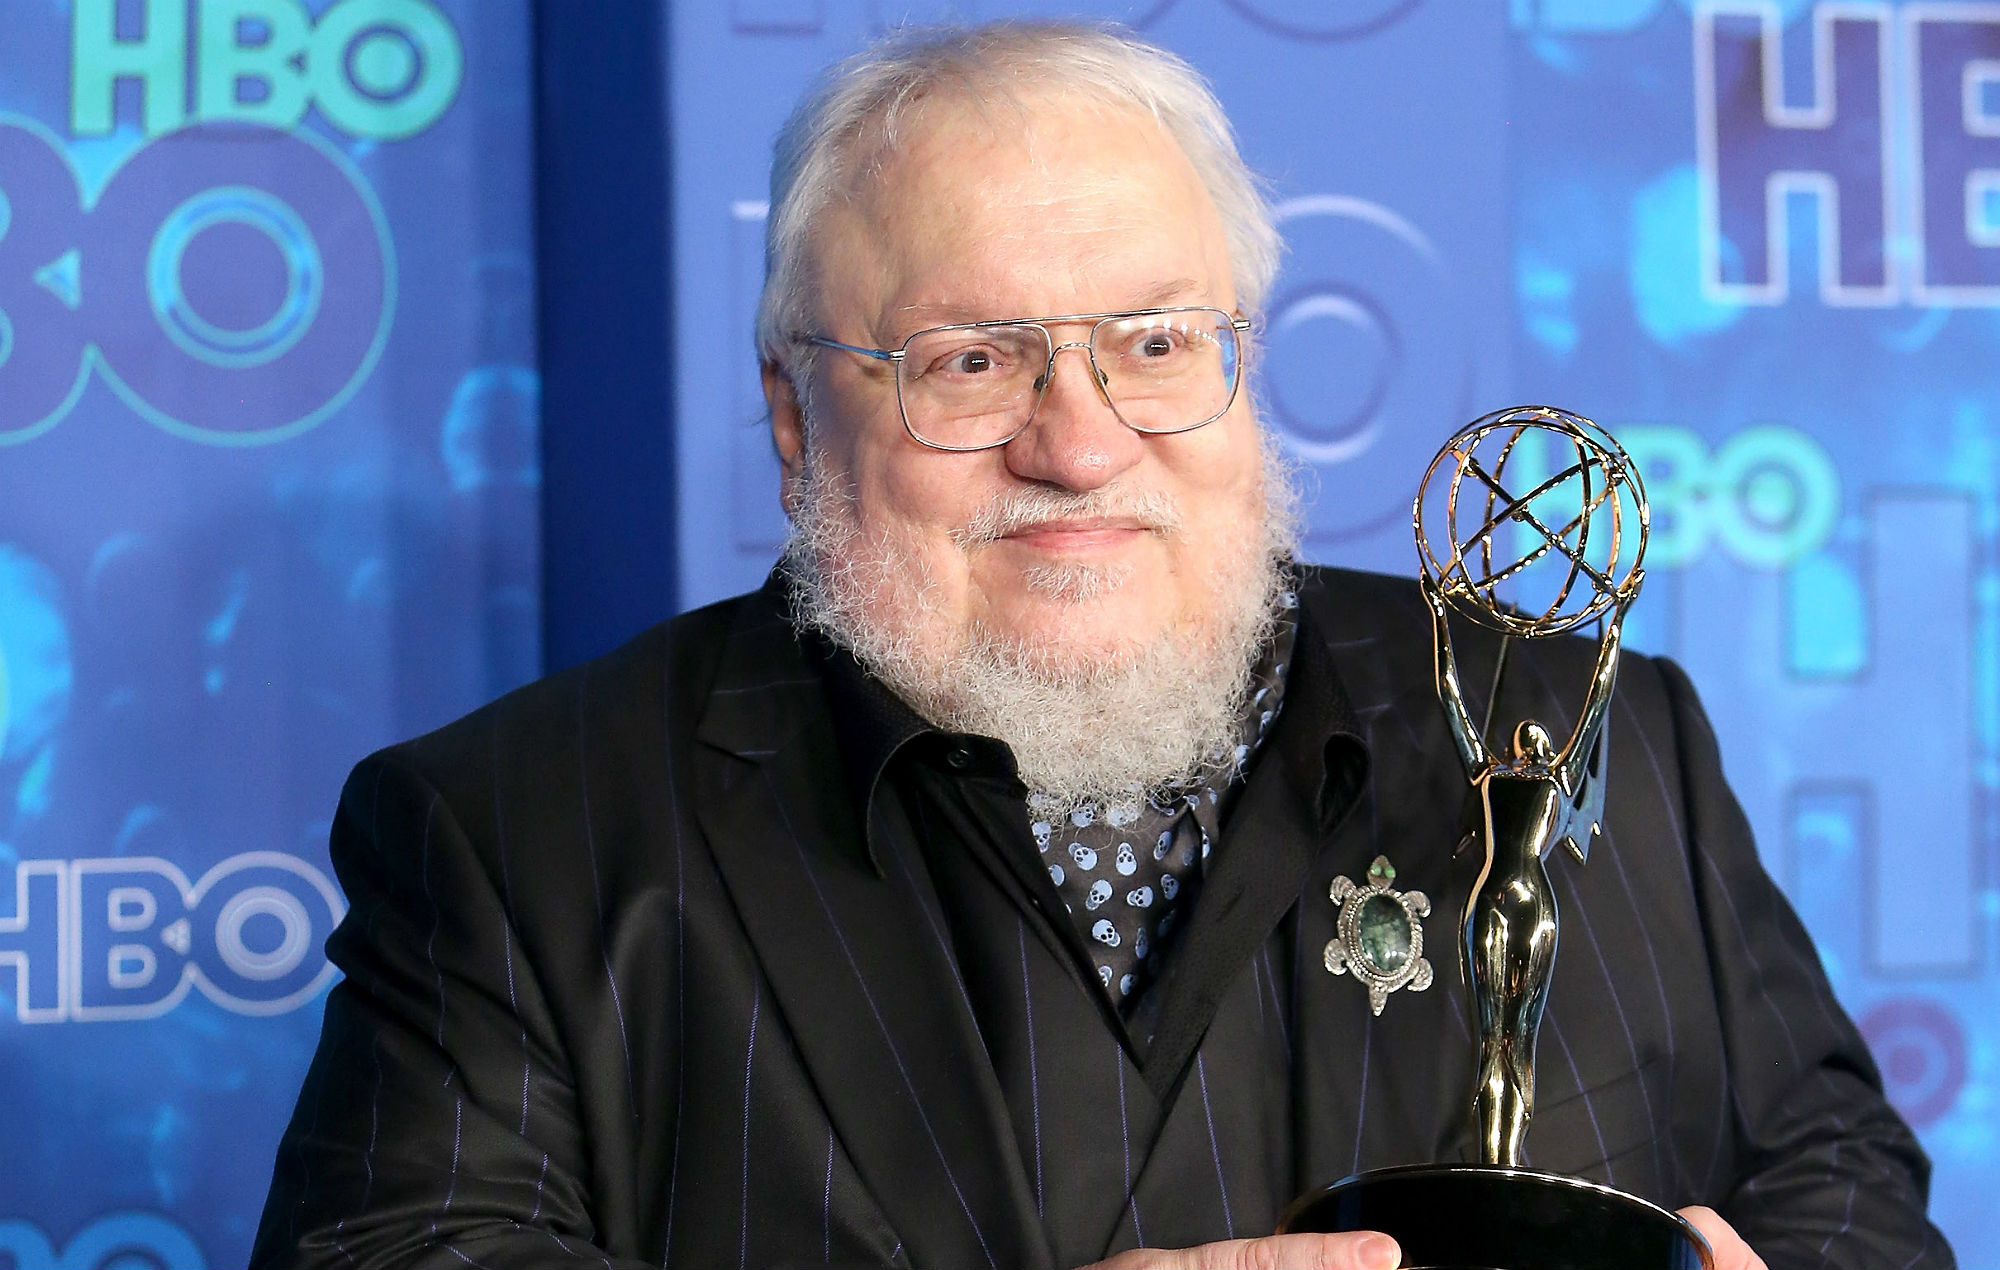 George R. R. Martin arrives at HBO's Post Emmy Awards reception held at The Plaza at the Pacific Design Center on September 18, 2016 in Los Angeles, California